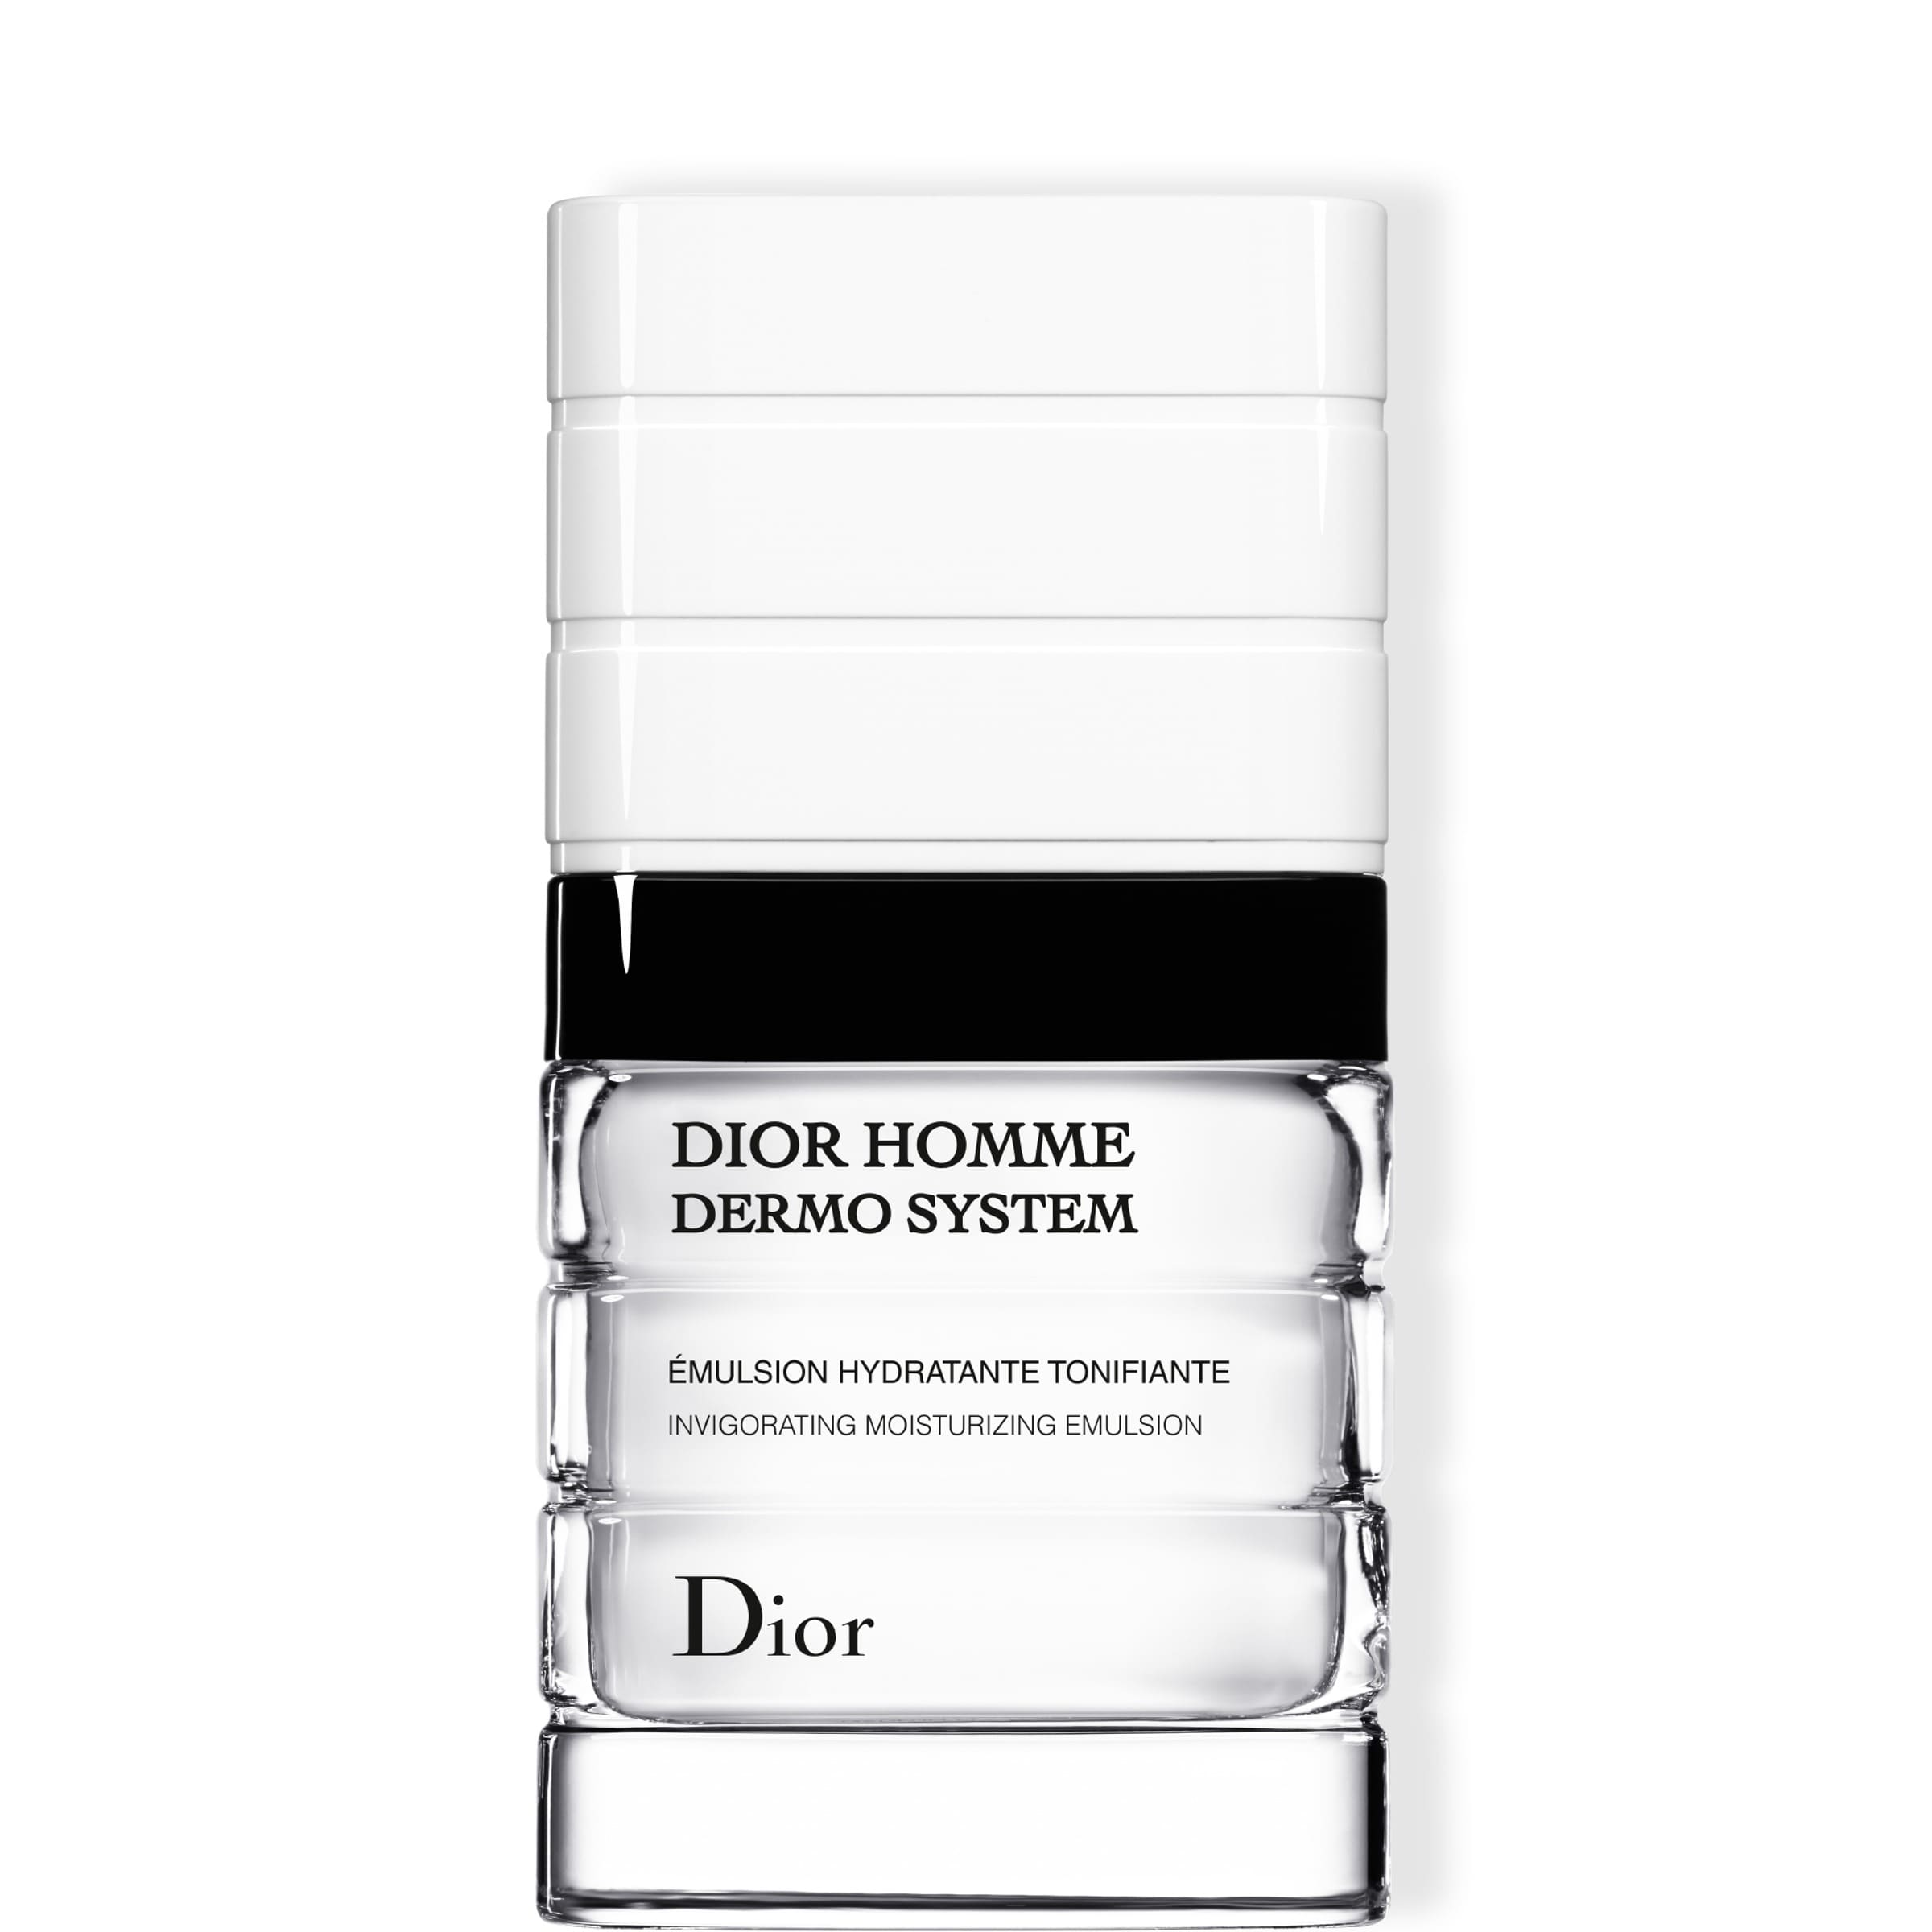 Dior Homme Dermo System Invigorating Moisturizing Emulsion 50ml